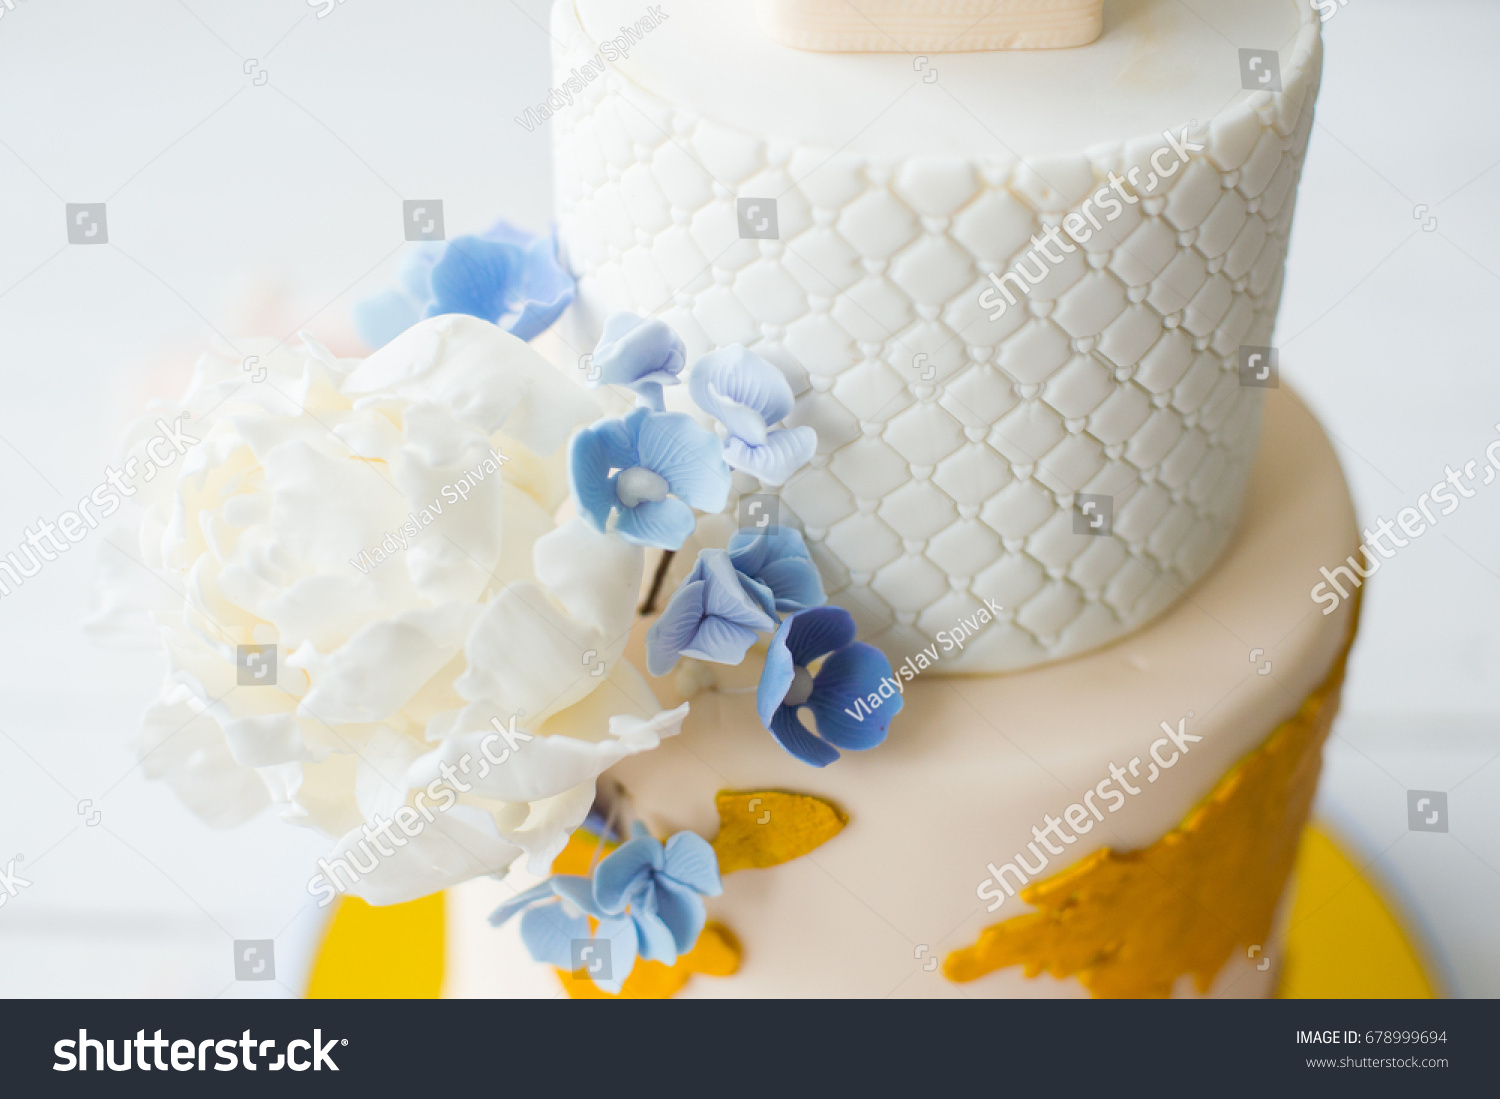 Unusual Wedding Cake Stock Photo (Download Now) 678999694 - Shutterstock